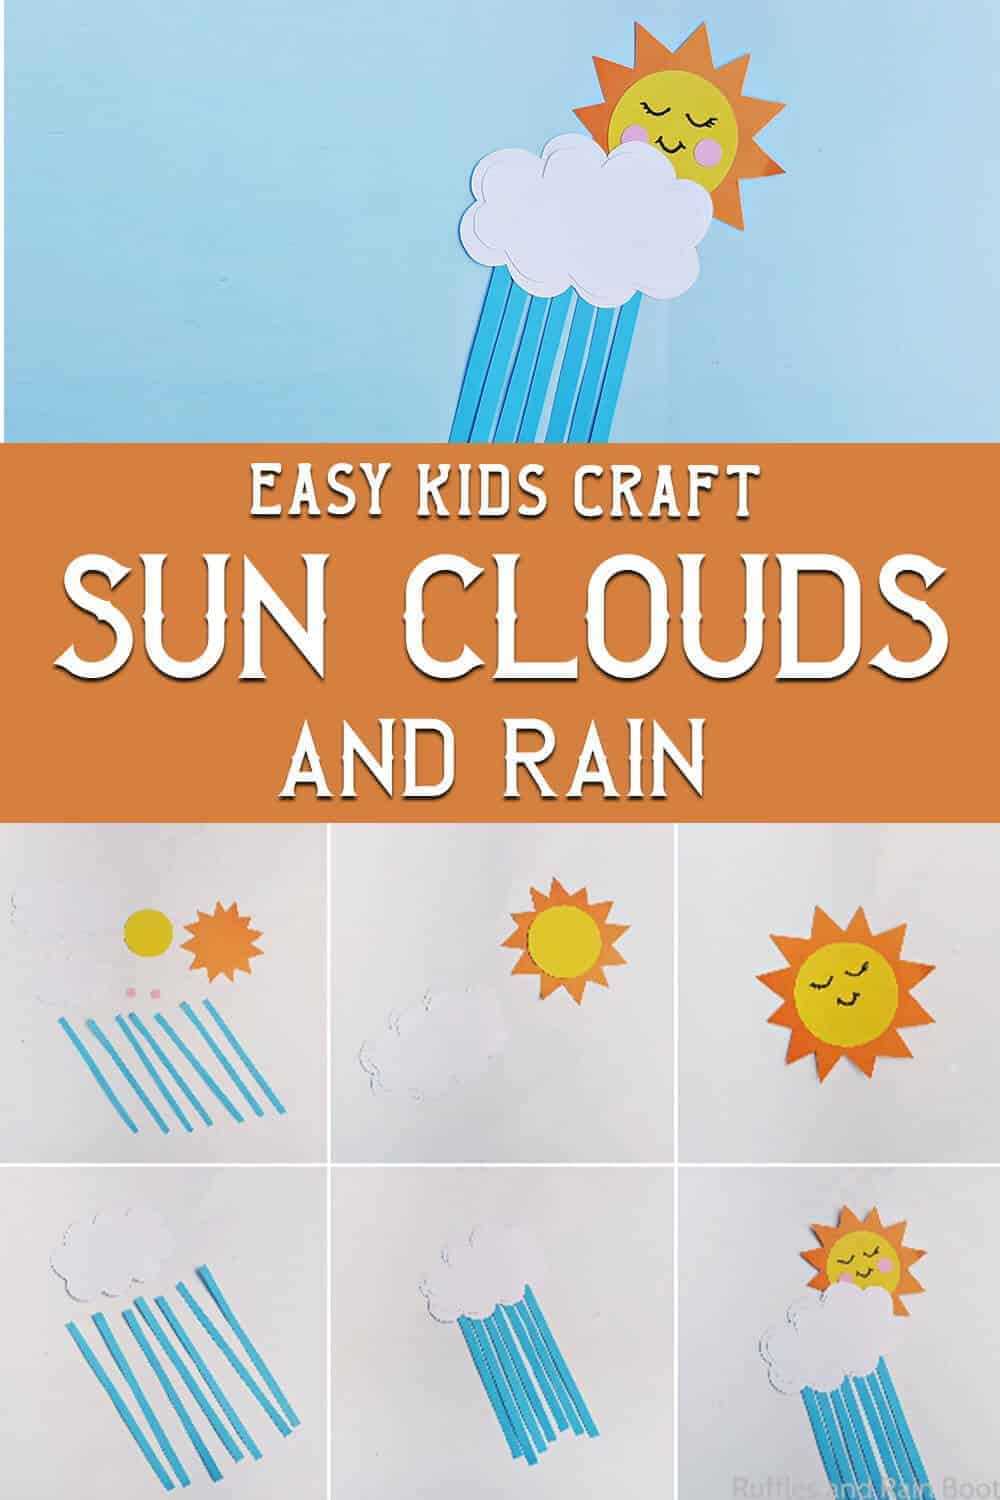 photo collage of rain cloud craft for kids with text which reads easy kids craft sun clouds and rain